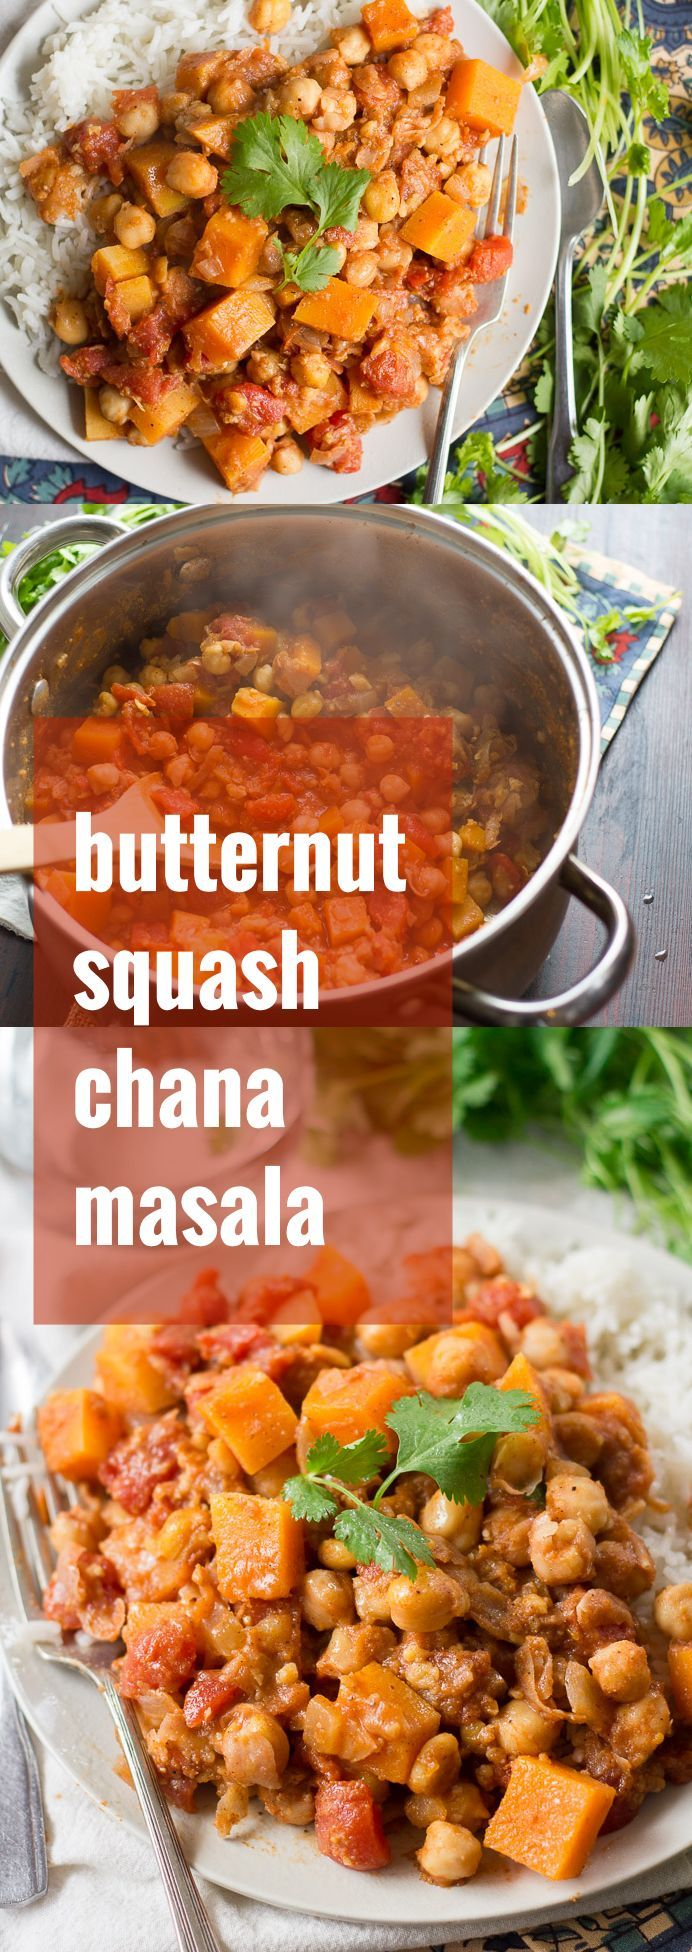 Butternut squash chunks add a hint of sweetness to this spicy and comforting chana masala. Serve it with rice or naan for a hearty and healthy vegan meal.